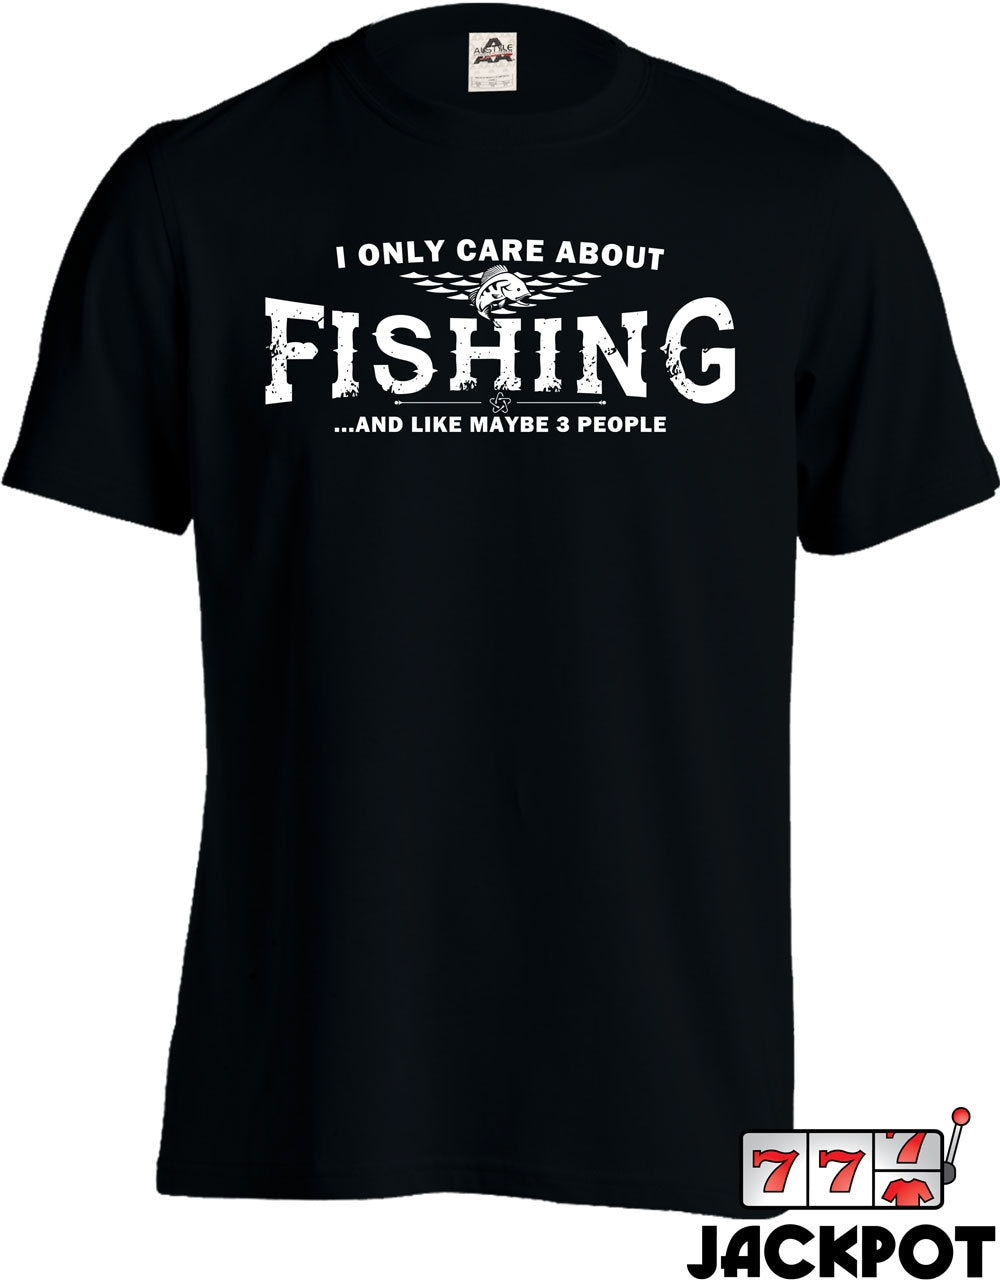 Funny fishing shirt i only care about fishing t by jackpottees for Funny fishing t shirts